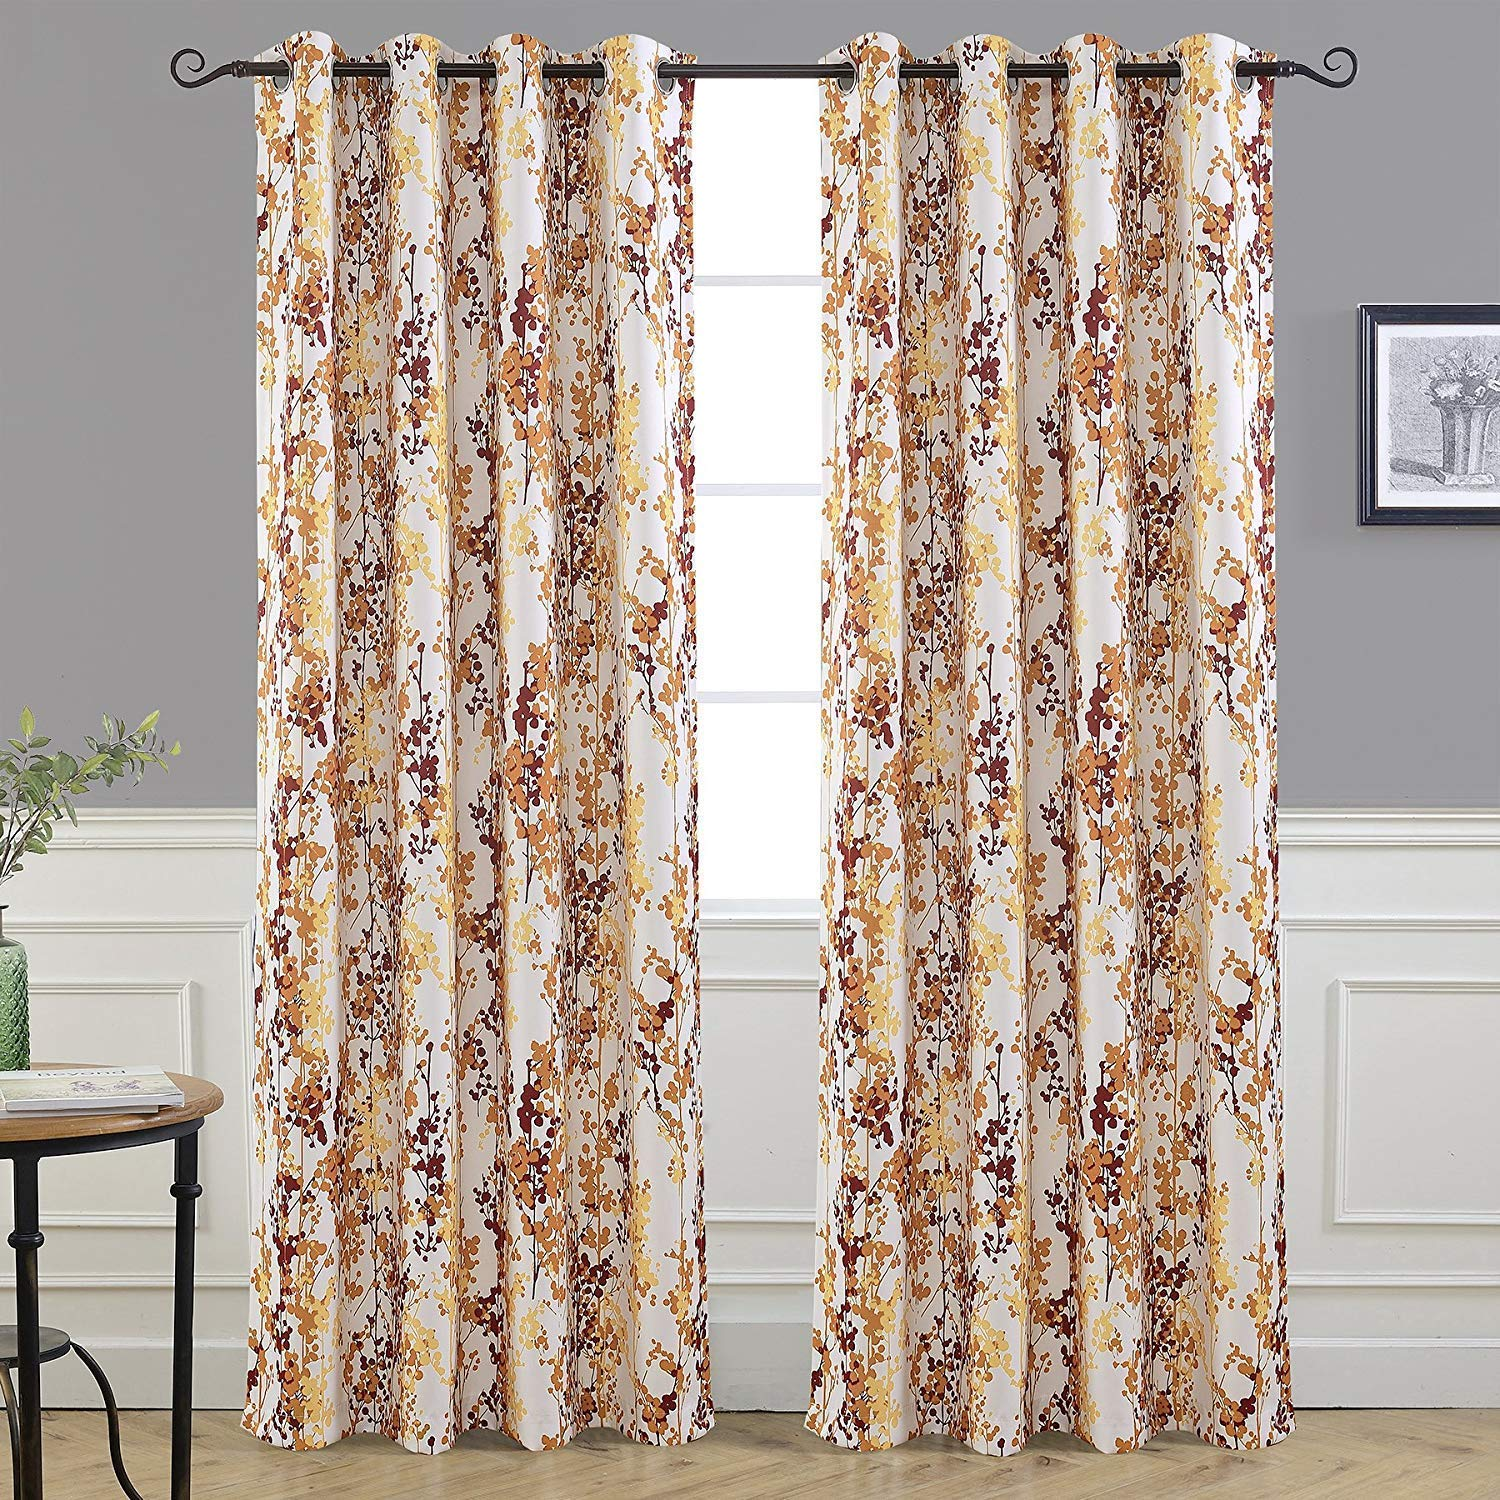 "DriftAway Leah Abstract Floral Blossom Ink Painting Room Darkening/Thermal Insulated Grommet Unlined Window Curtains, Set of Two Panels, Each Size 52""x84"" (Red/Rust/Orange/Gold/Yellow)"